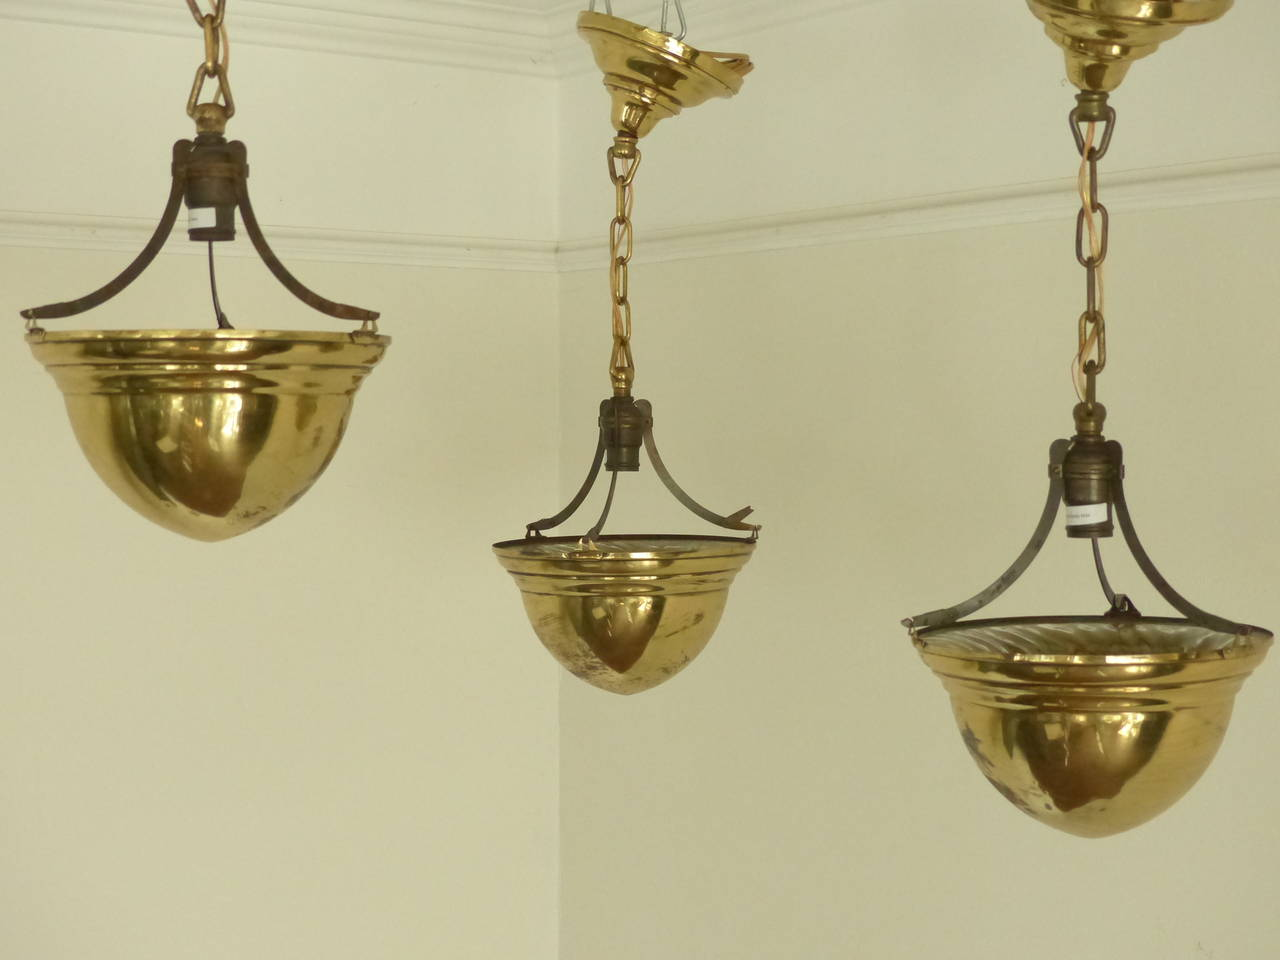 1920 brass cone ceiling light fixtures at 1stdibs